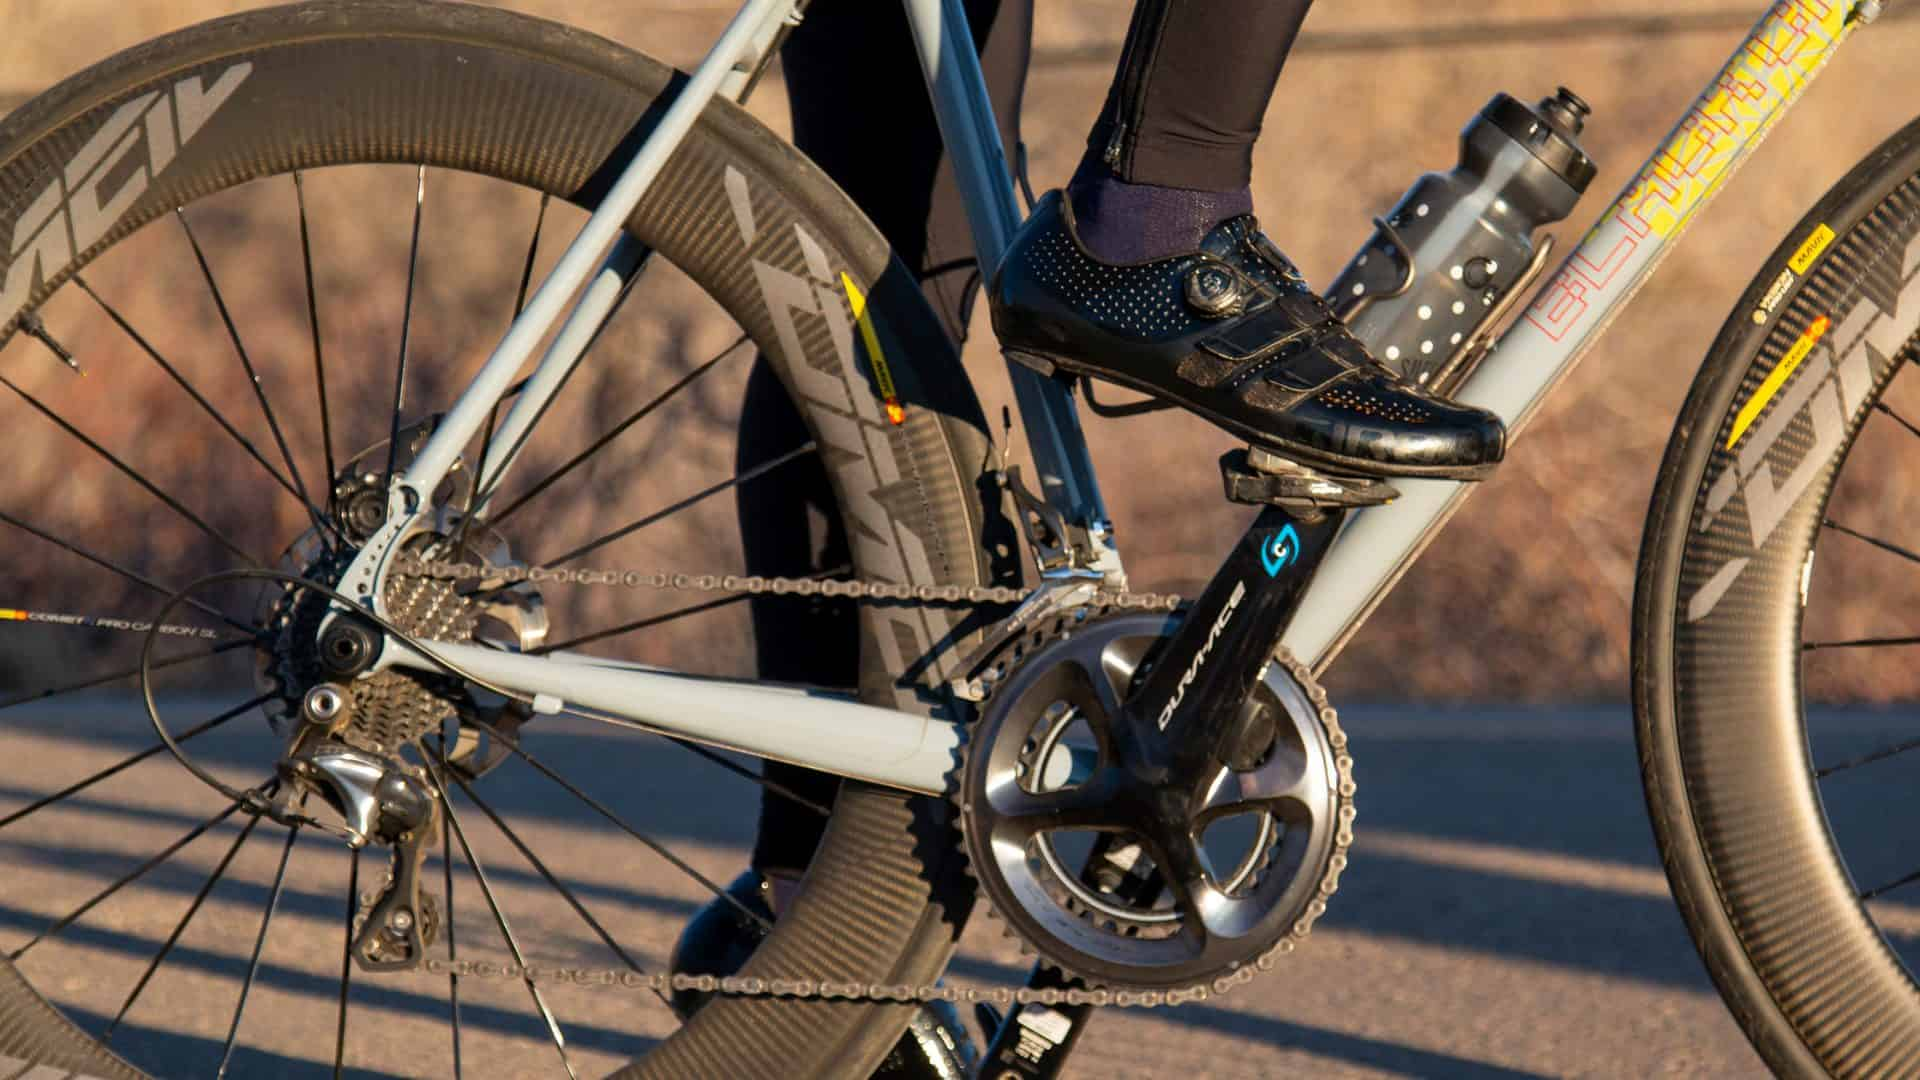 You bought a power meter, now what?